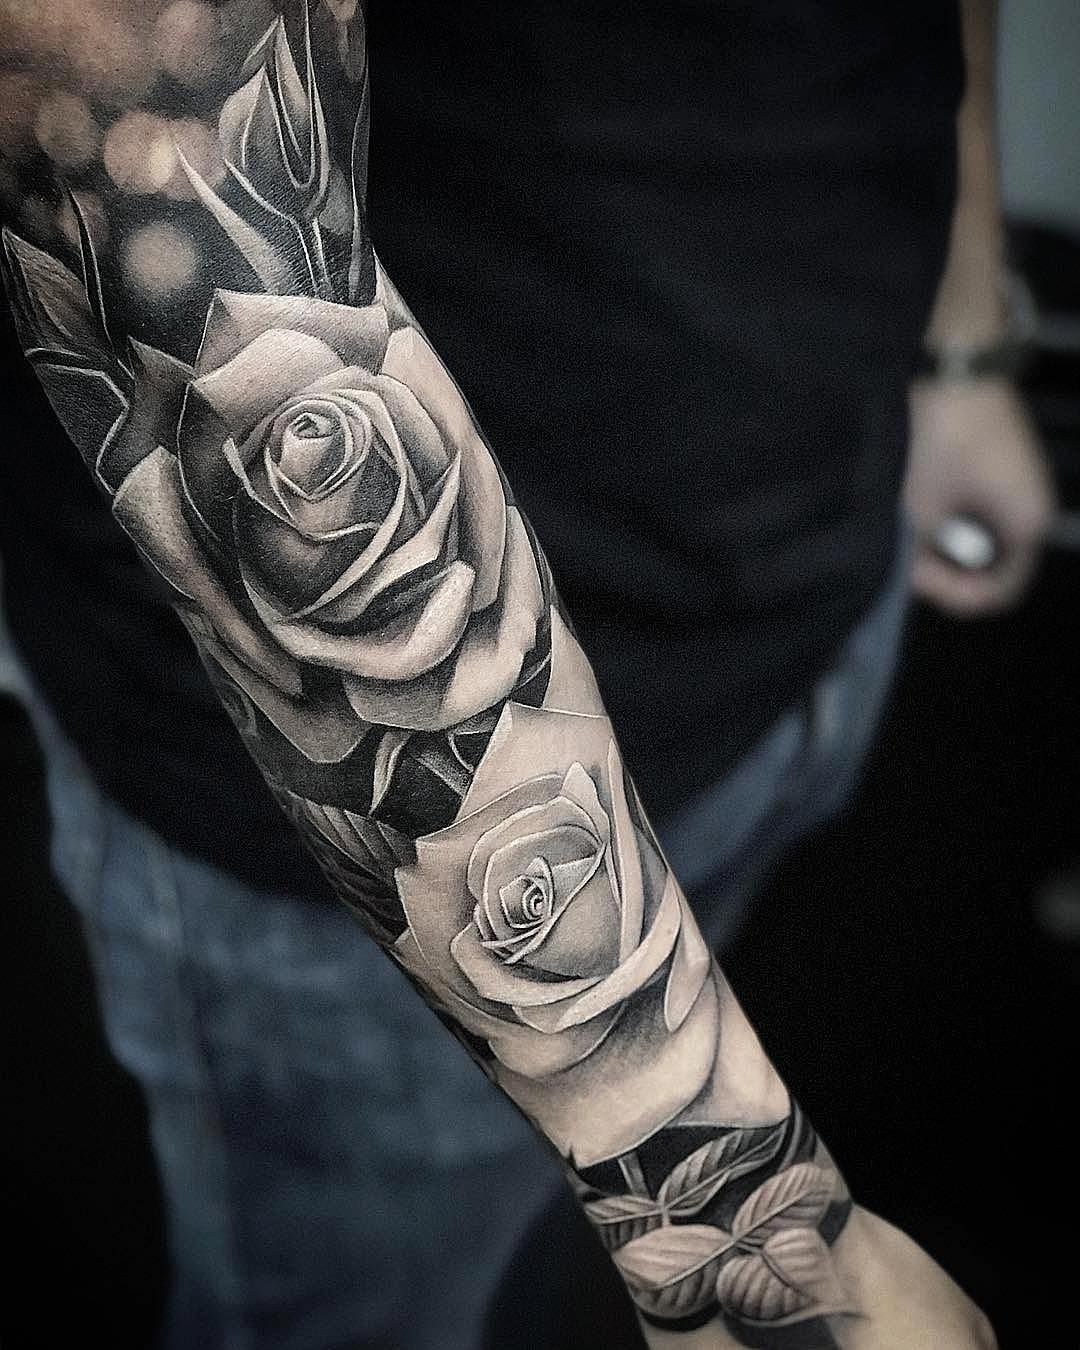 "Em Morris on Instagram: ""Amazing artist Kir Tattoo @kir_tattoo awesome roses arm tattoo! @art_spotlight @inksav @worldofartists @bnginksociety @art @inkedmag…"""